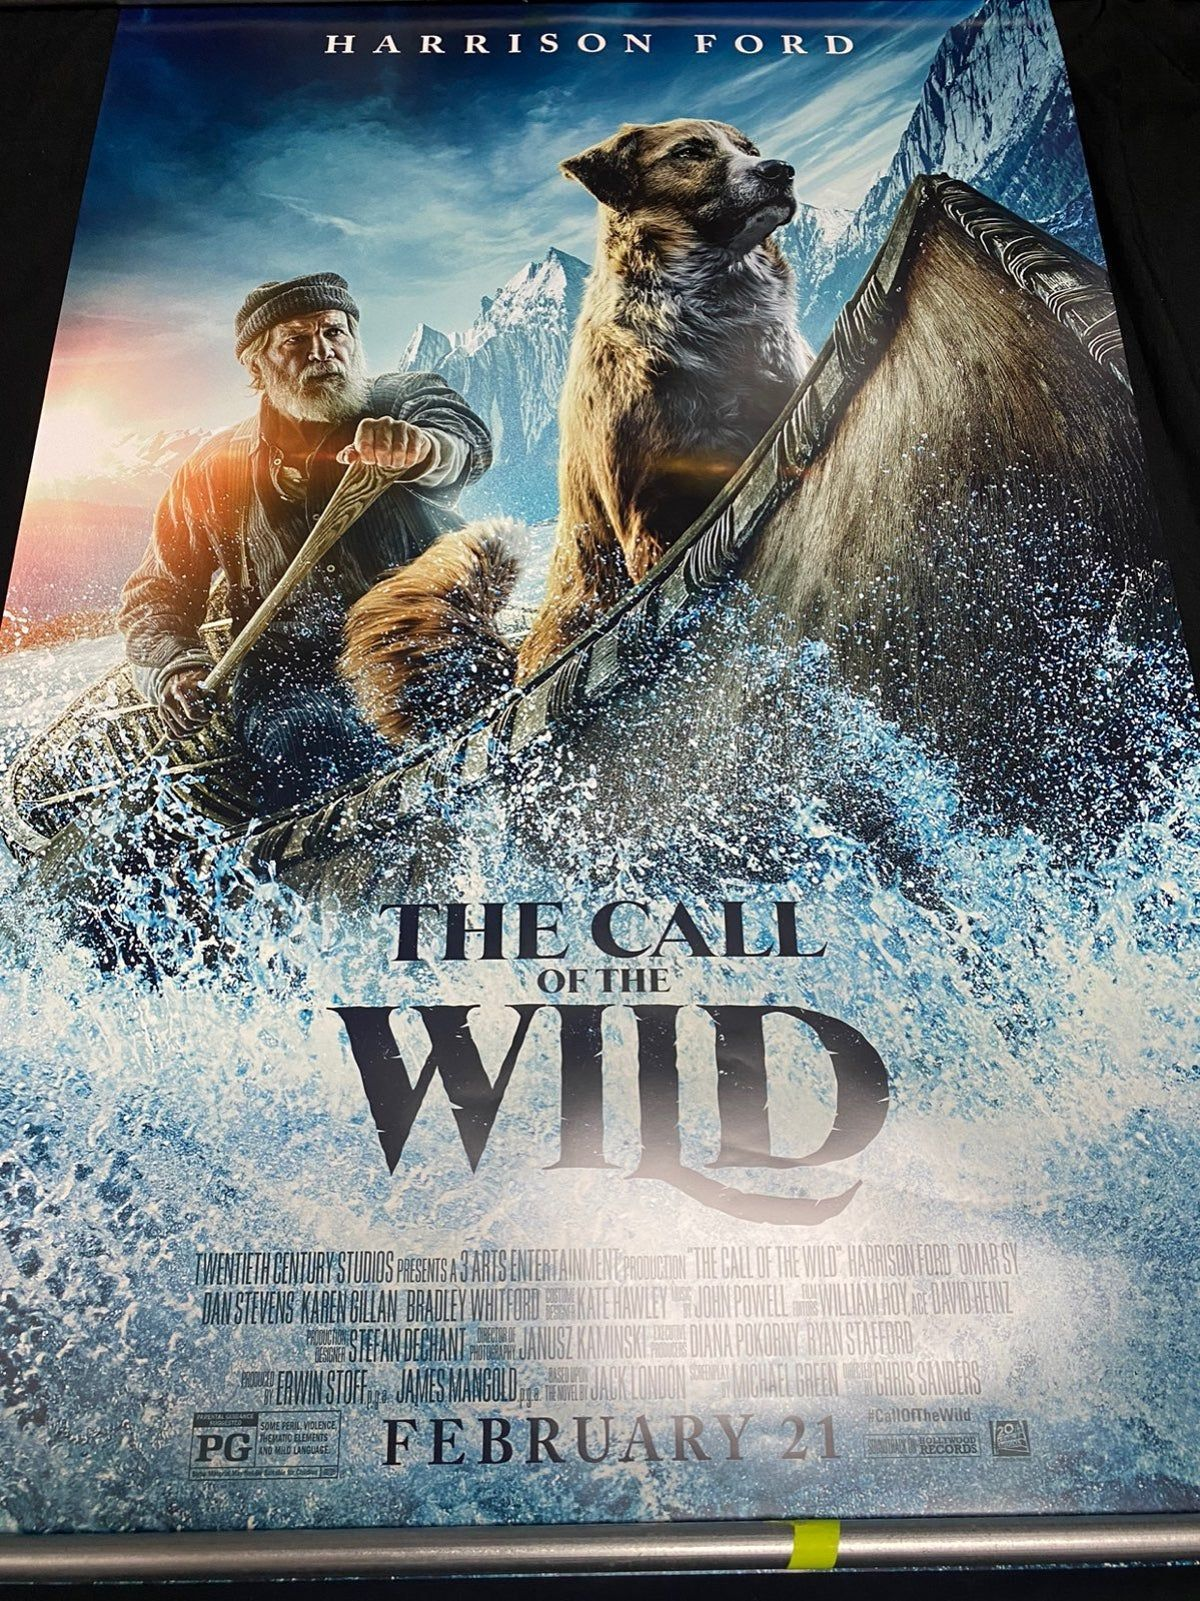 THE CALL OF THE WILD Movie Poster A sled dog struggles for